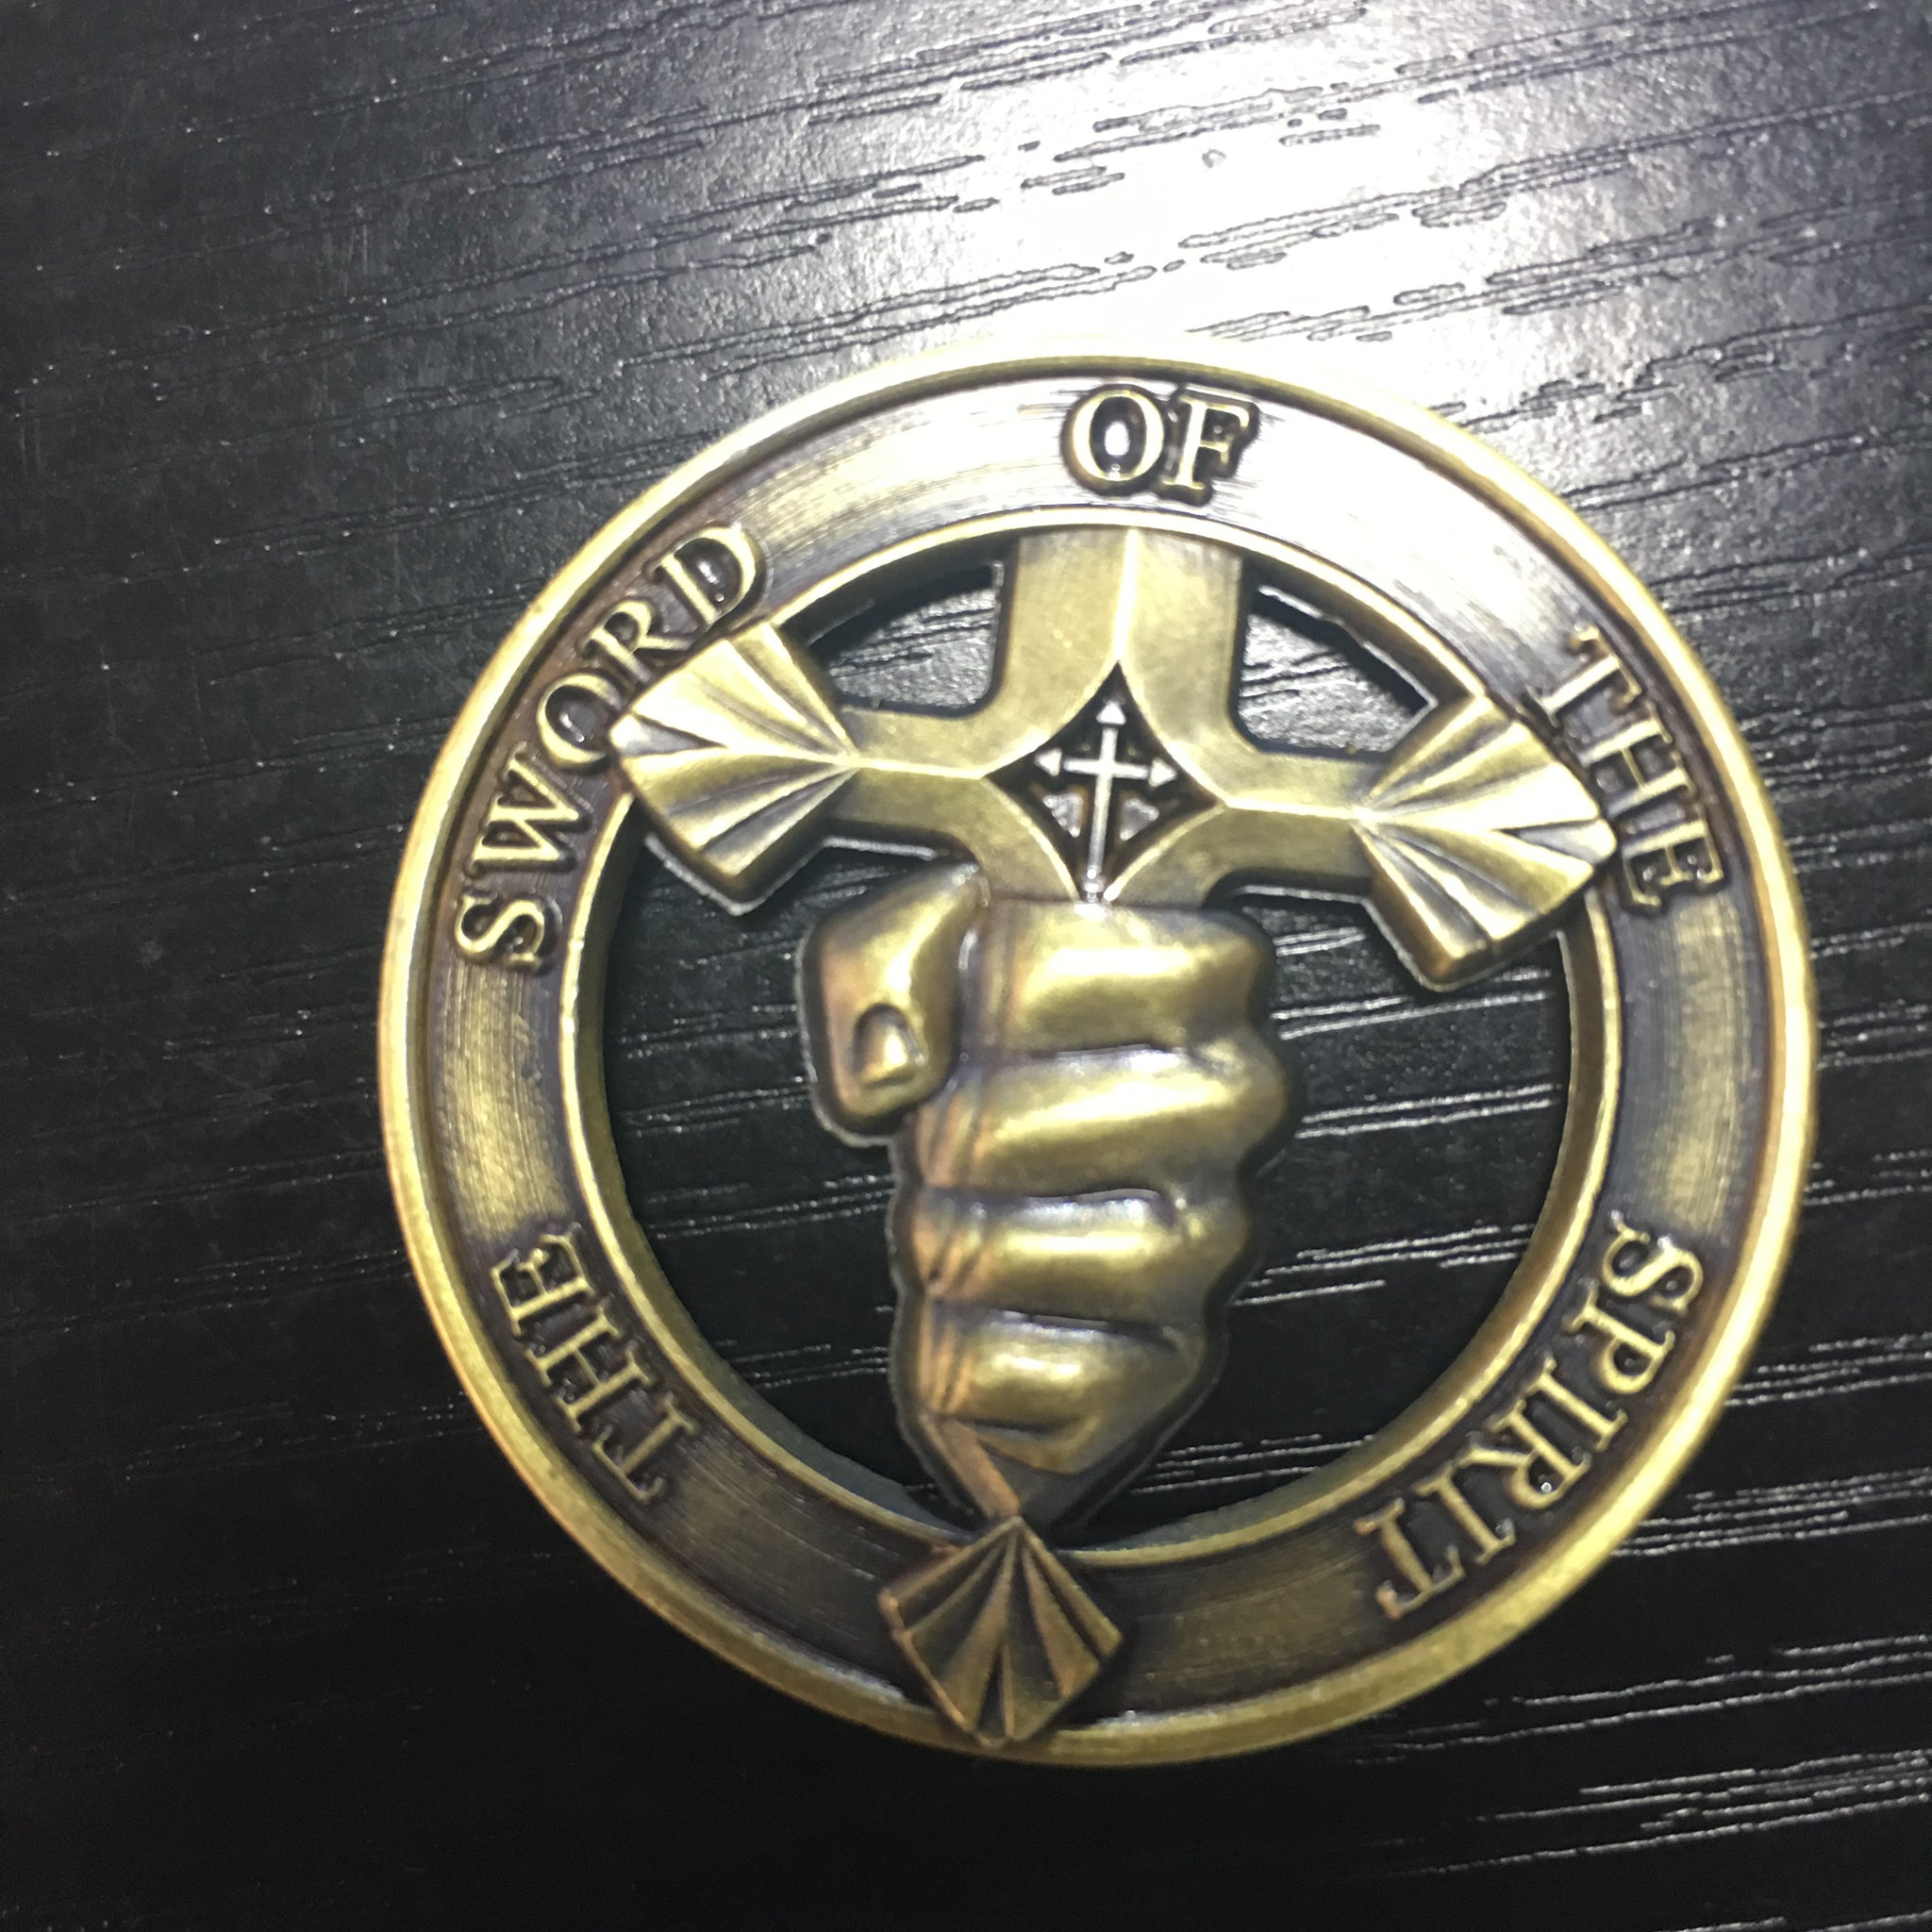 Who Trains My Hand For Wars bronze plated The Sword of The Spirit challenge coins